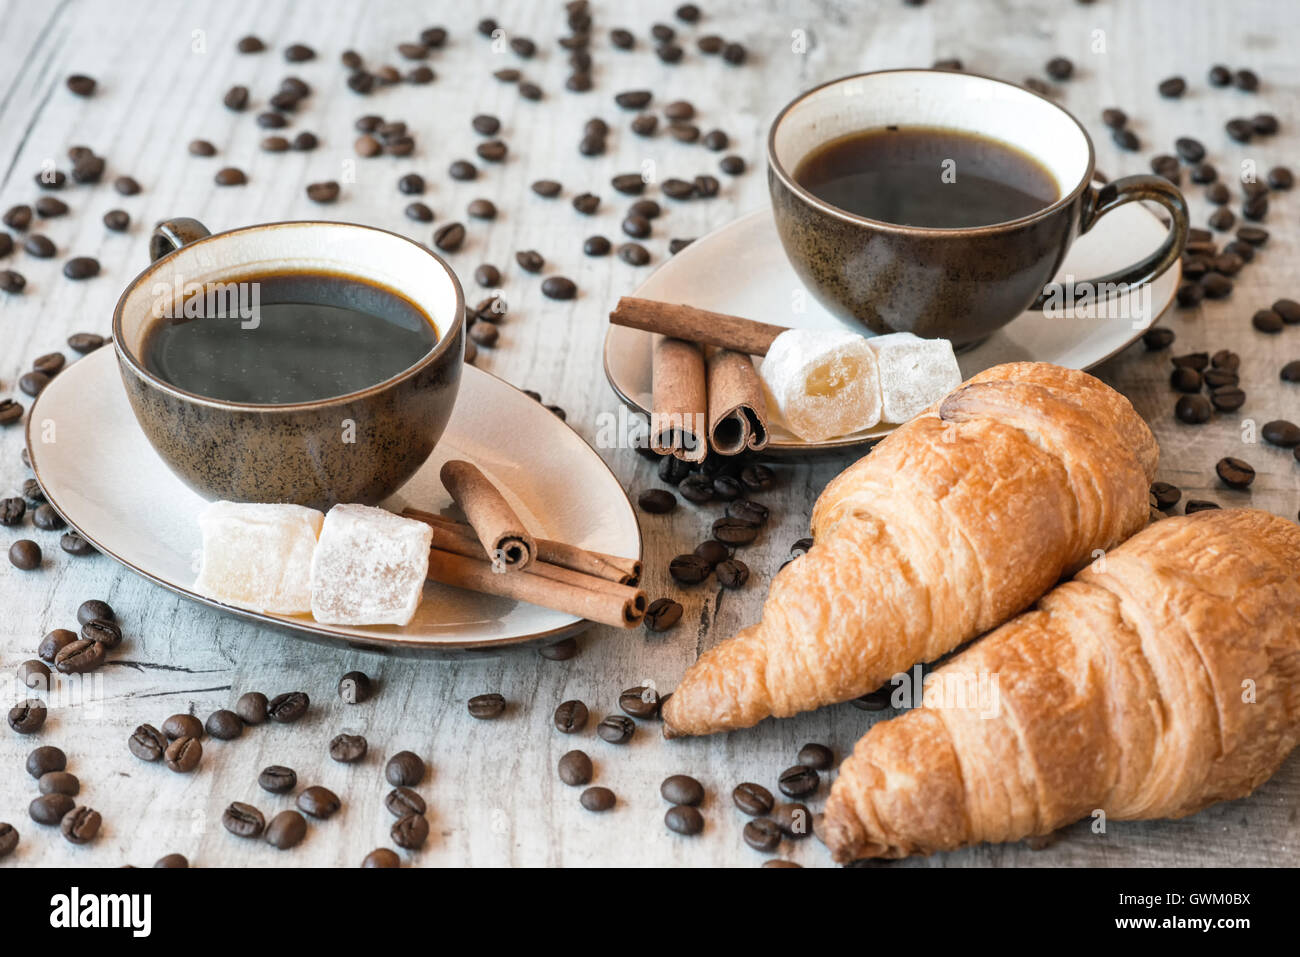 Cup of coffee with grains, croissant on wooden background - Stock Image